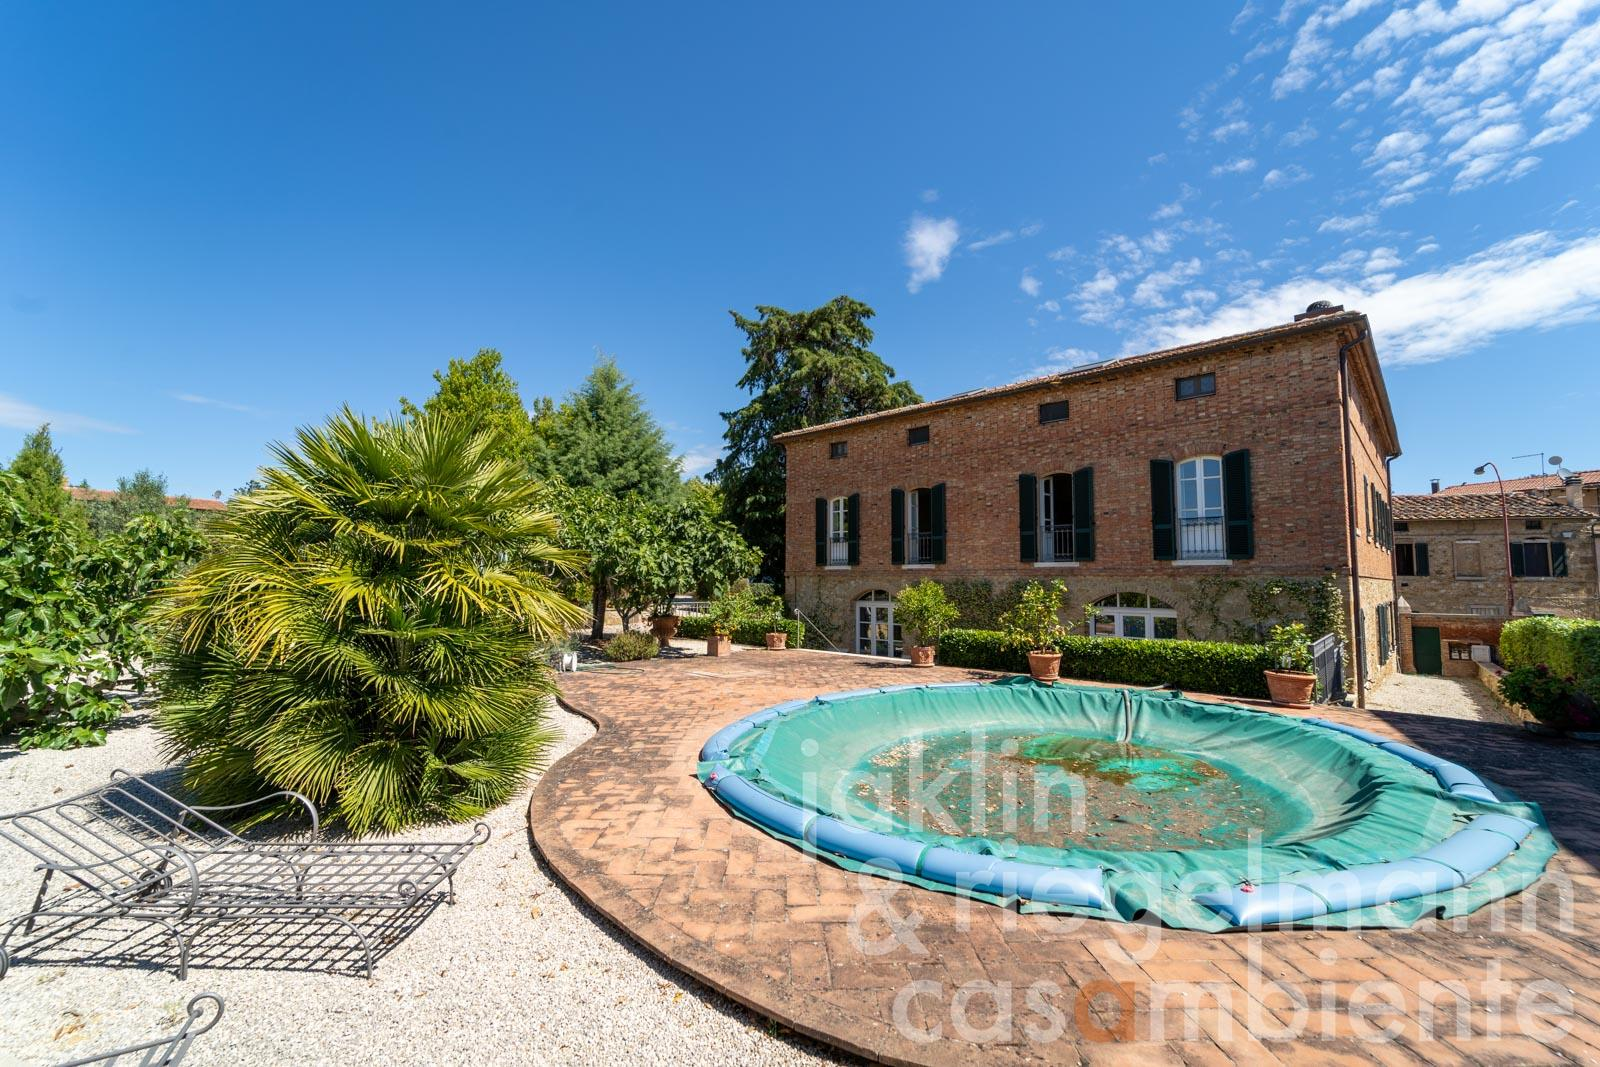 Villa with annex, olive grove, pool and magnificent views on the outskirts of a picturesque village